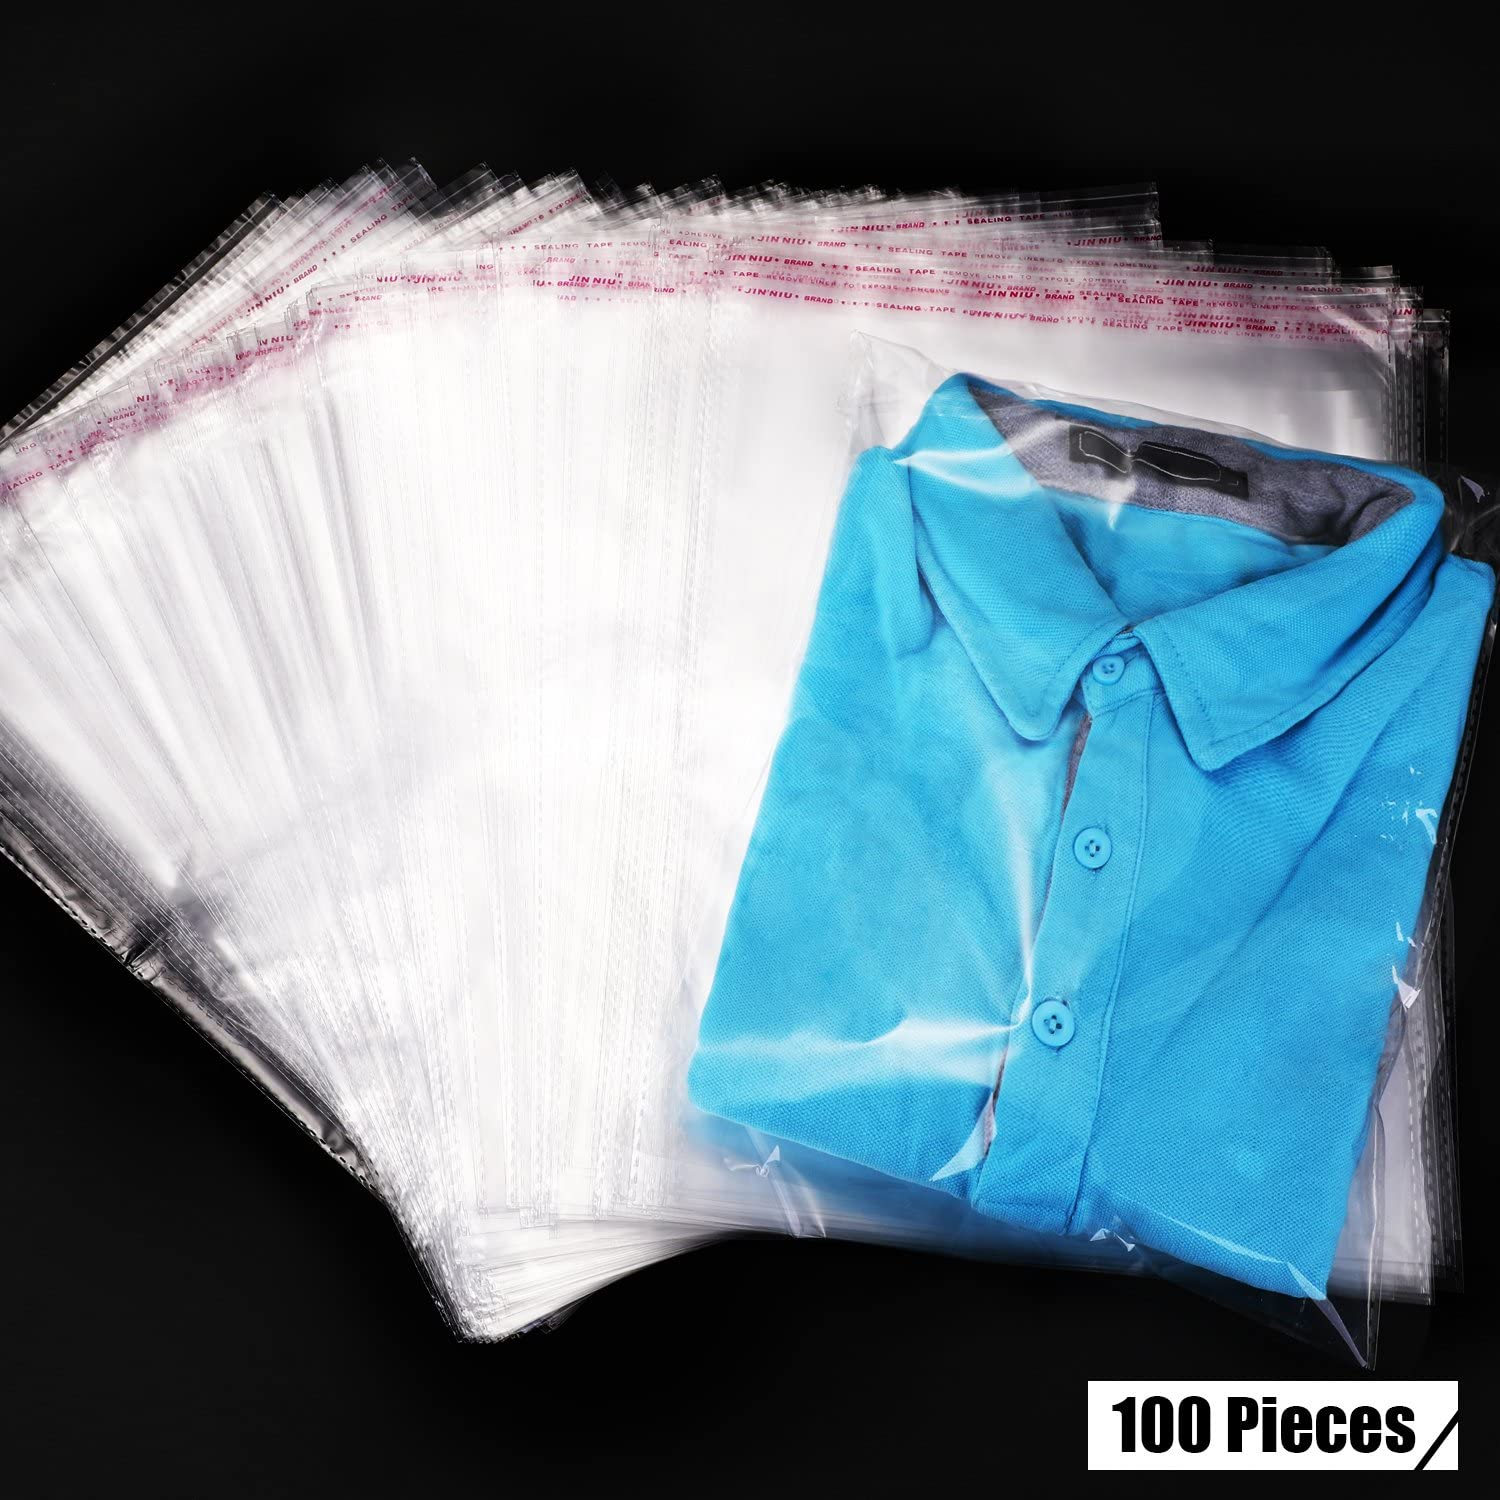 Clear Apparel Bags Self Seal Plastic Bags Adhesive Bags for T-shirt and Clothes (100 Pieces)